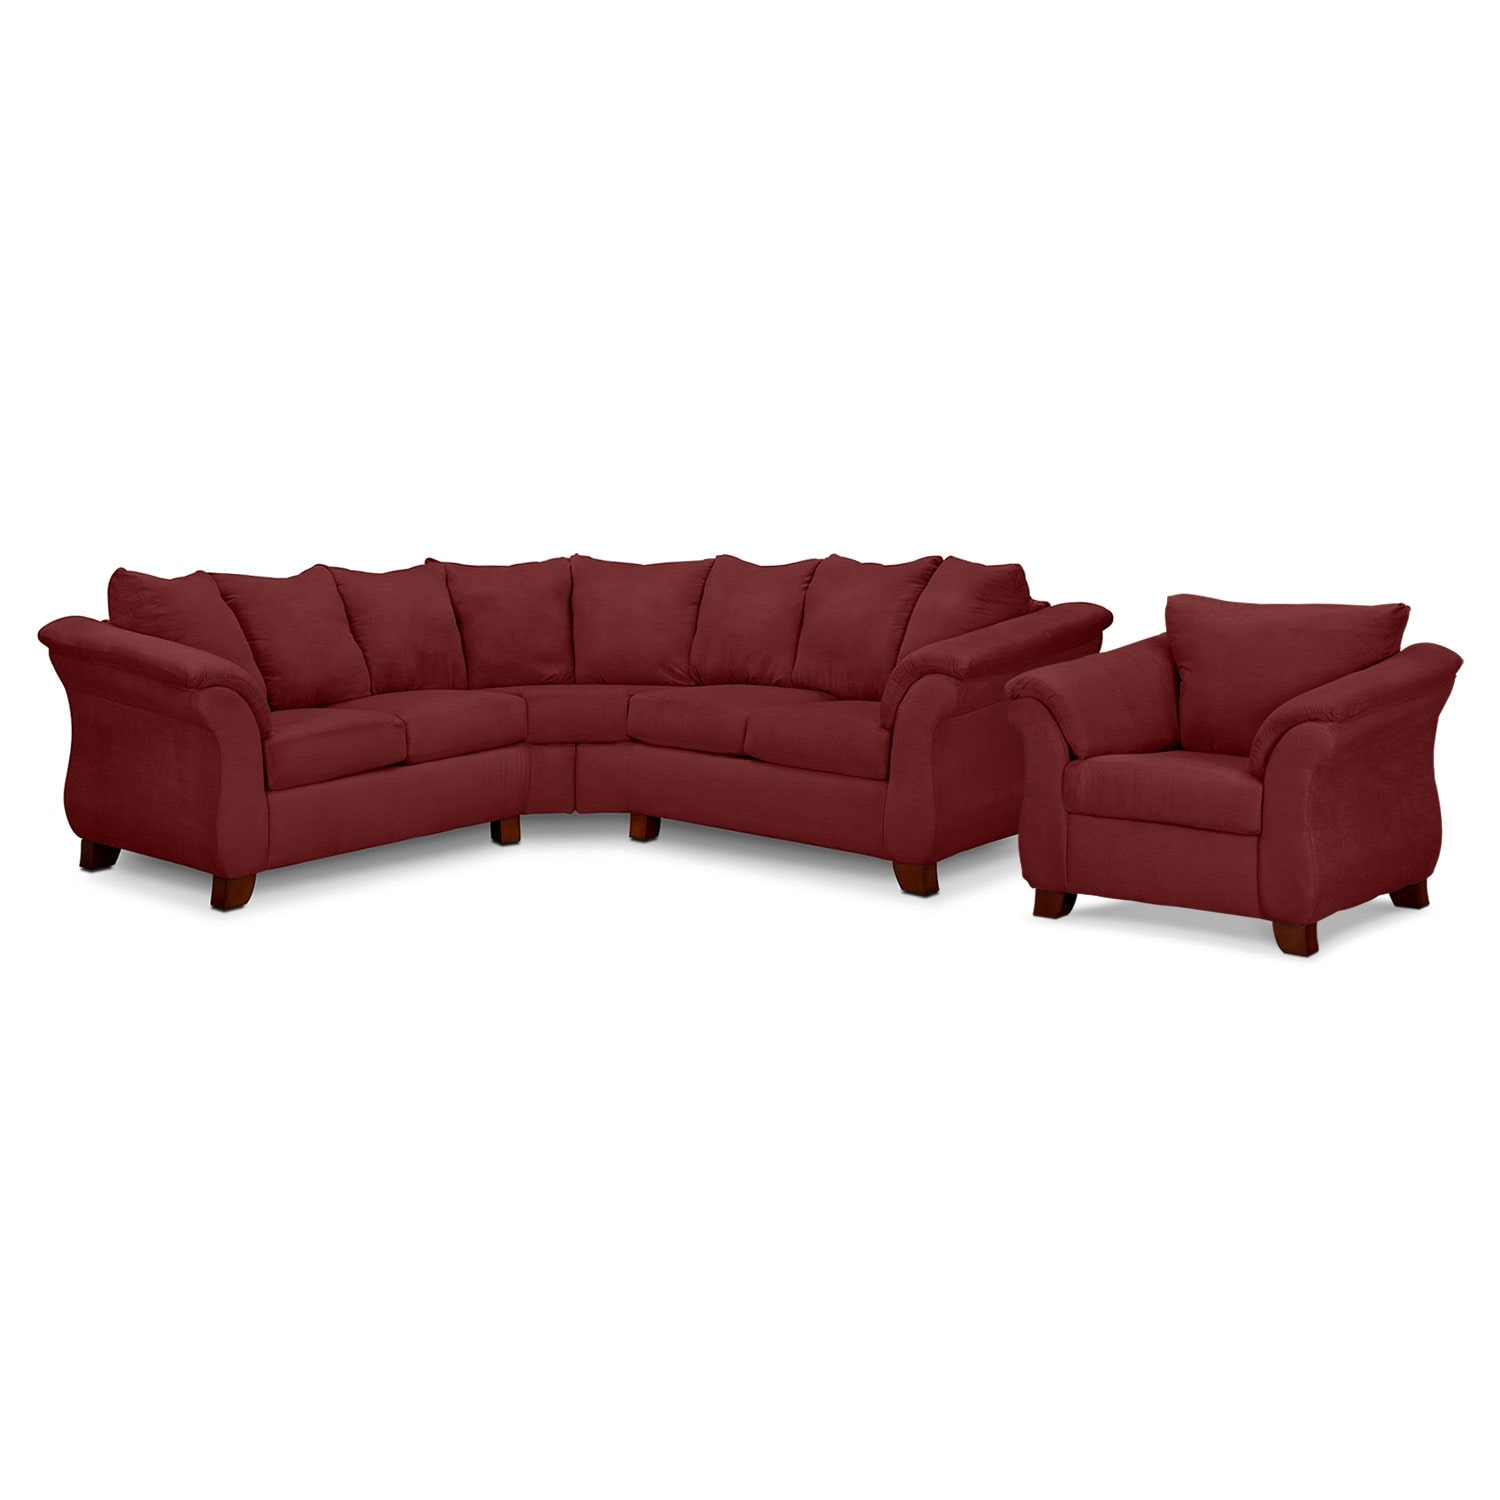 Adrian Red II 2 Pc. Sectional and Chair